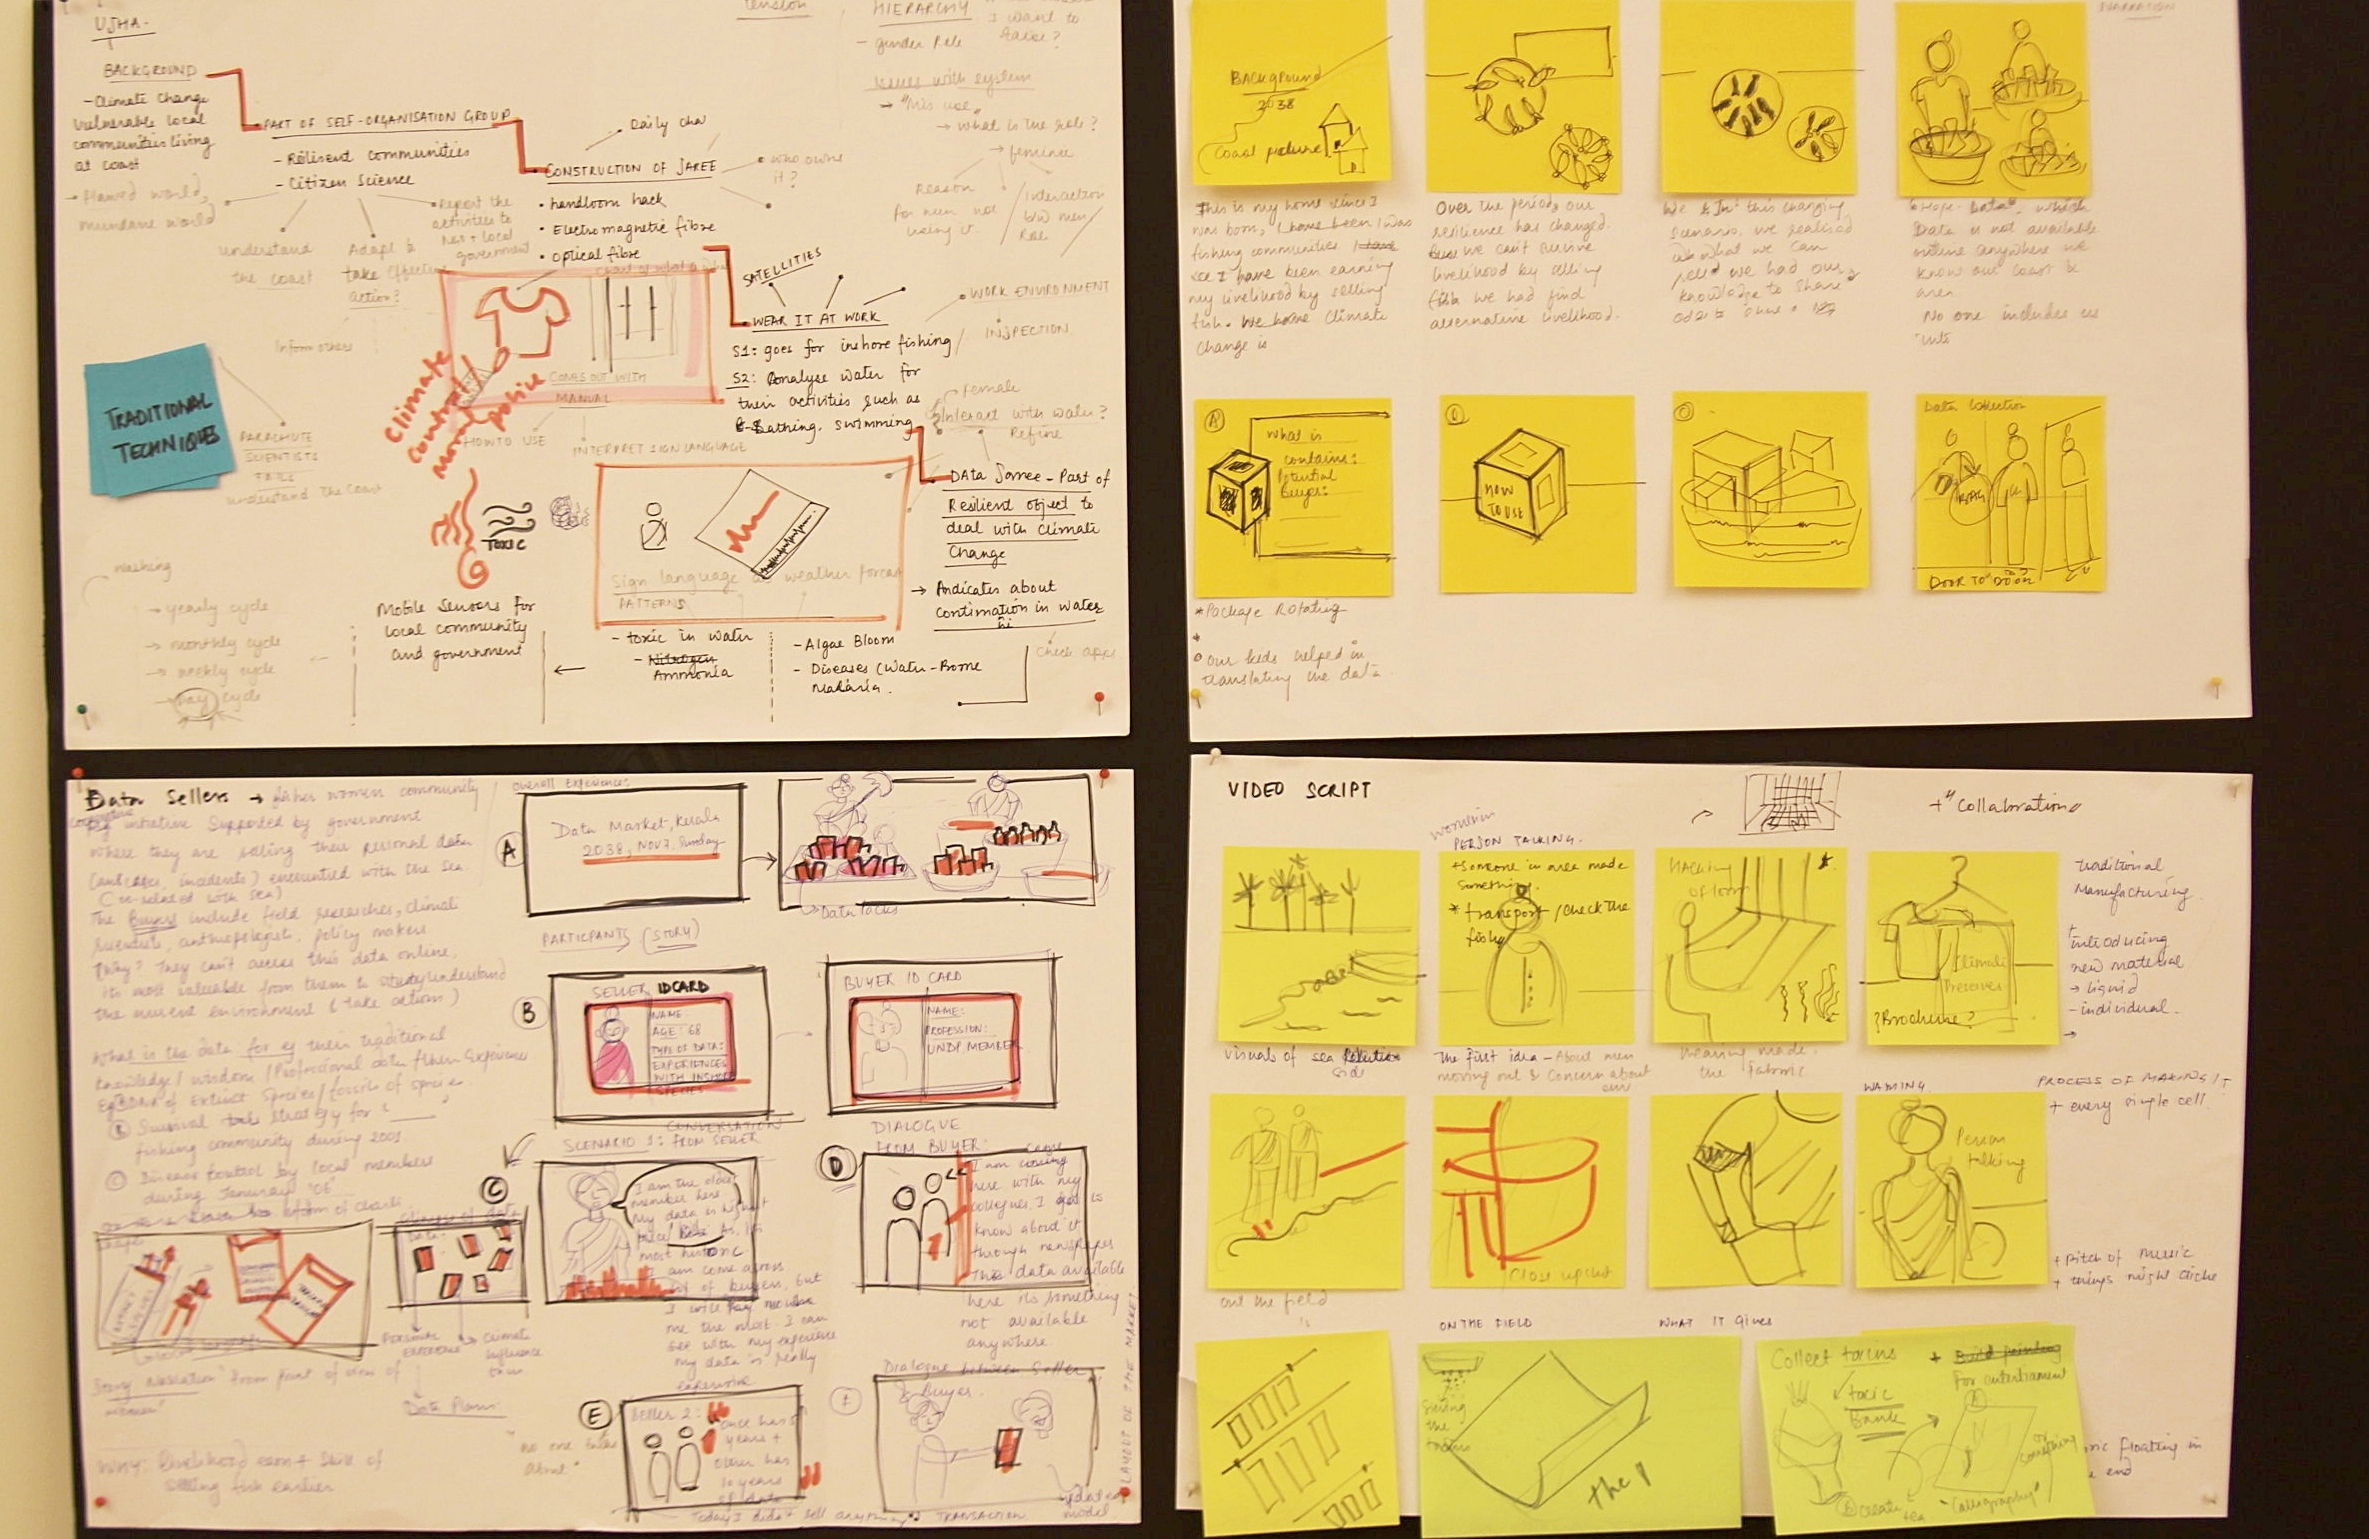 Storyboarding - Early storyboard to communicate the story from a perspective of a fishing women character.